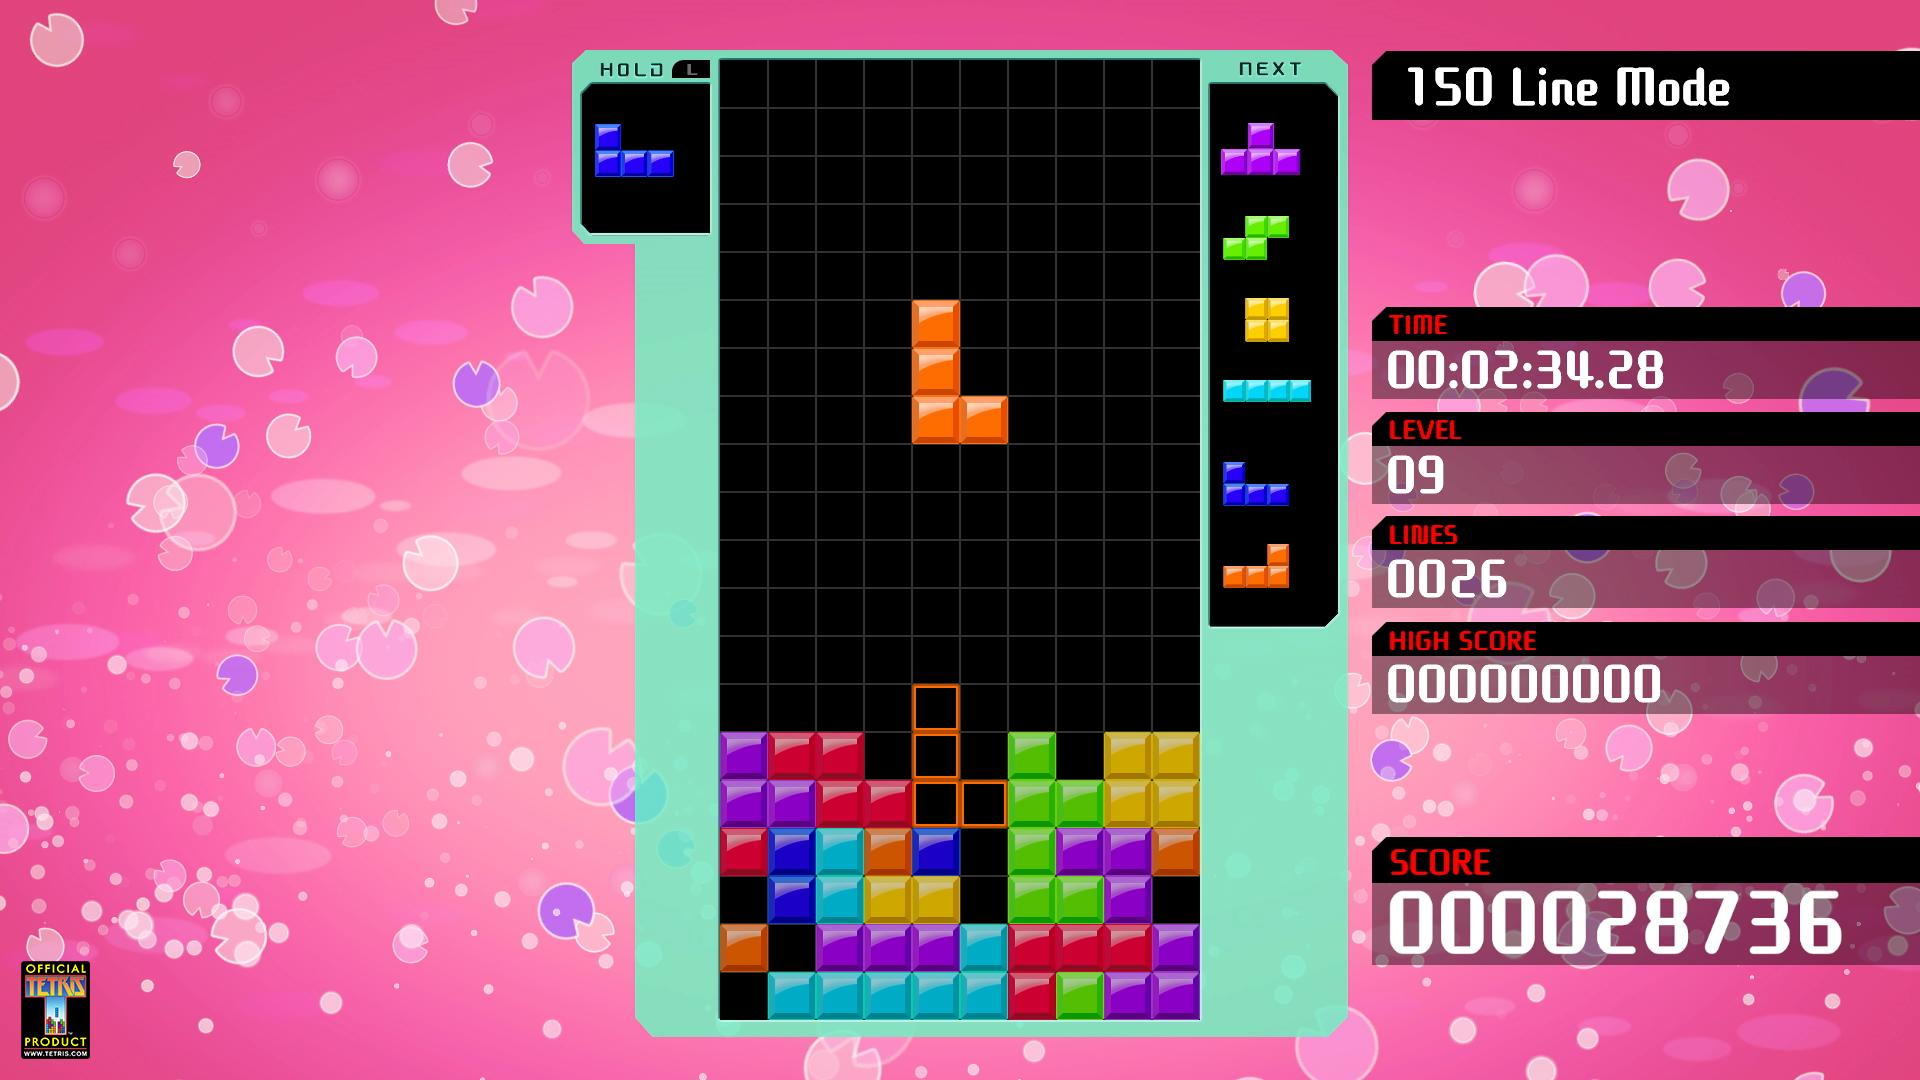 Tetris Royale will offer battle royale style gameplay for mobile devices including iOS and Android